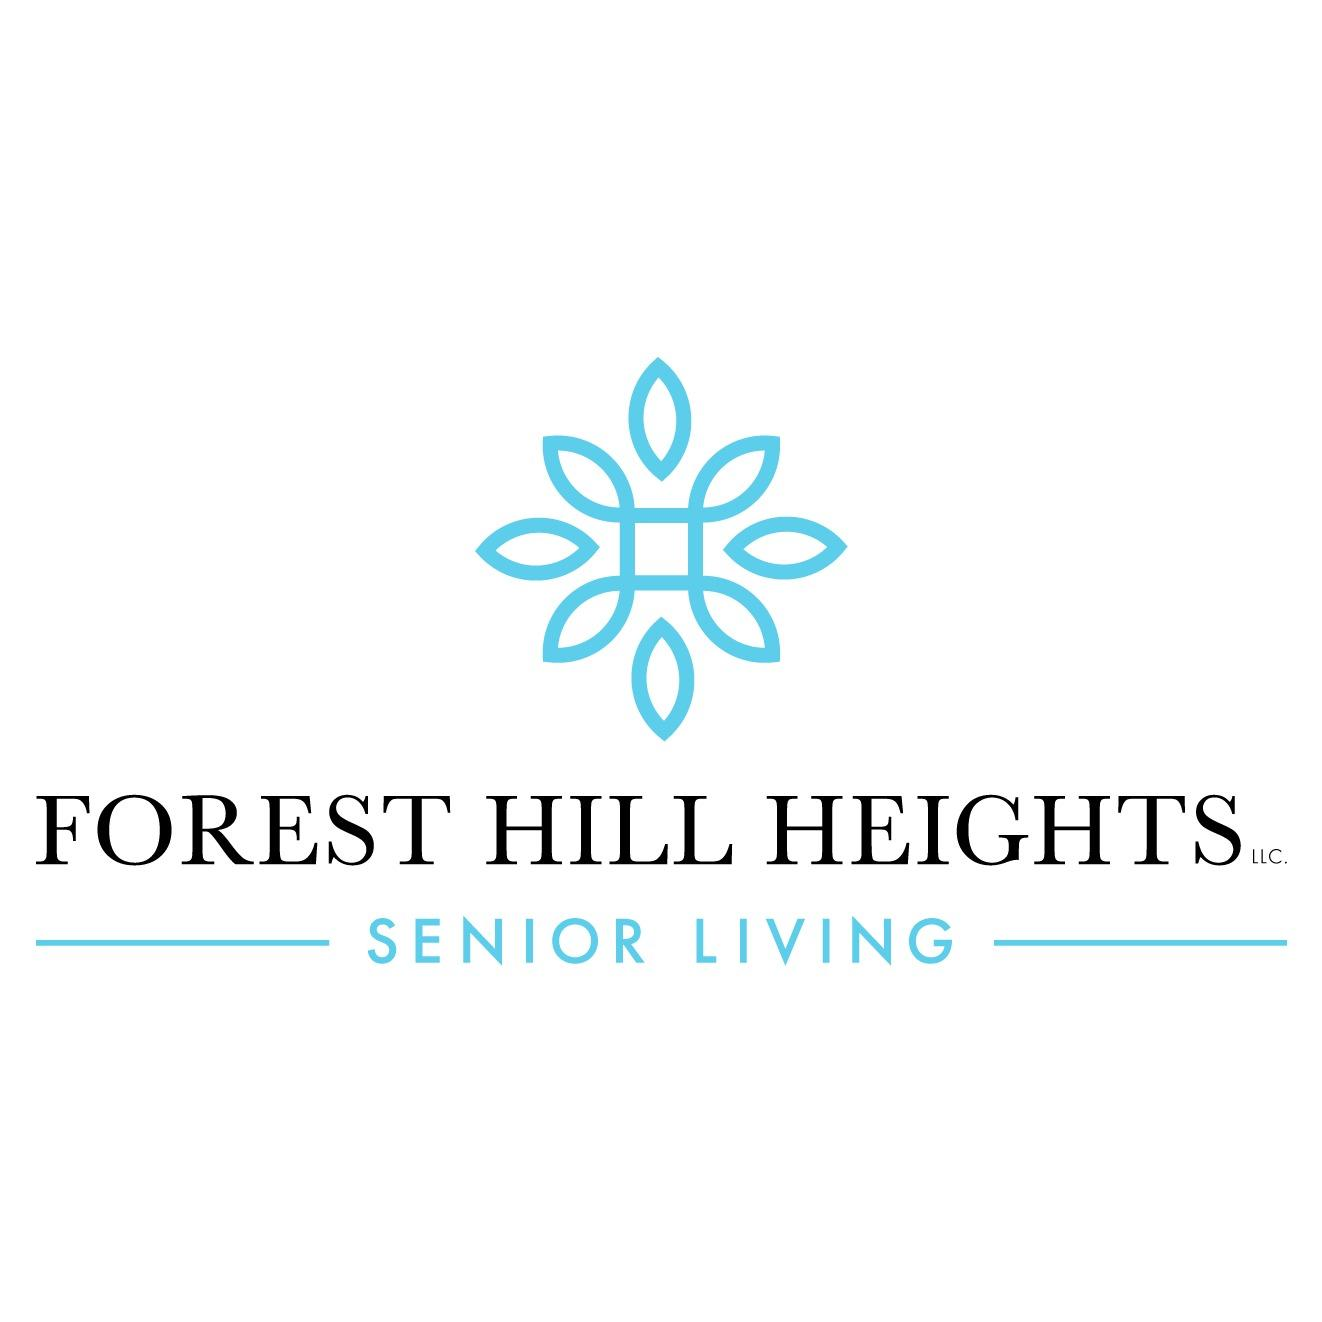 Forest Hill Heights Senior Living